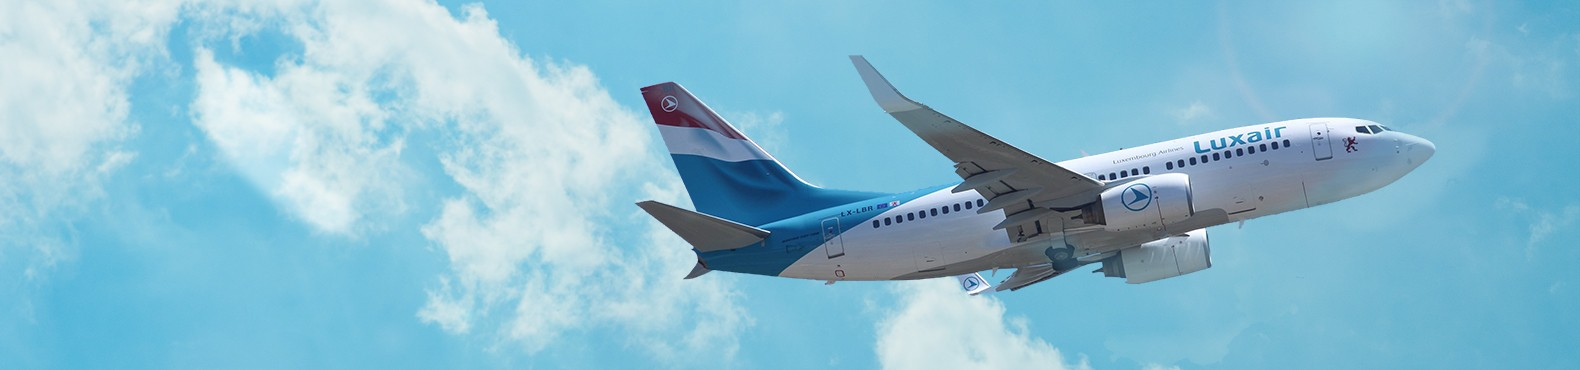 Luxair Airlines Fromto Cheap Direct Flights Luxembourg KcT31JlF